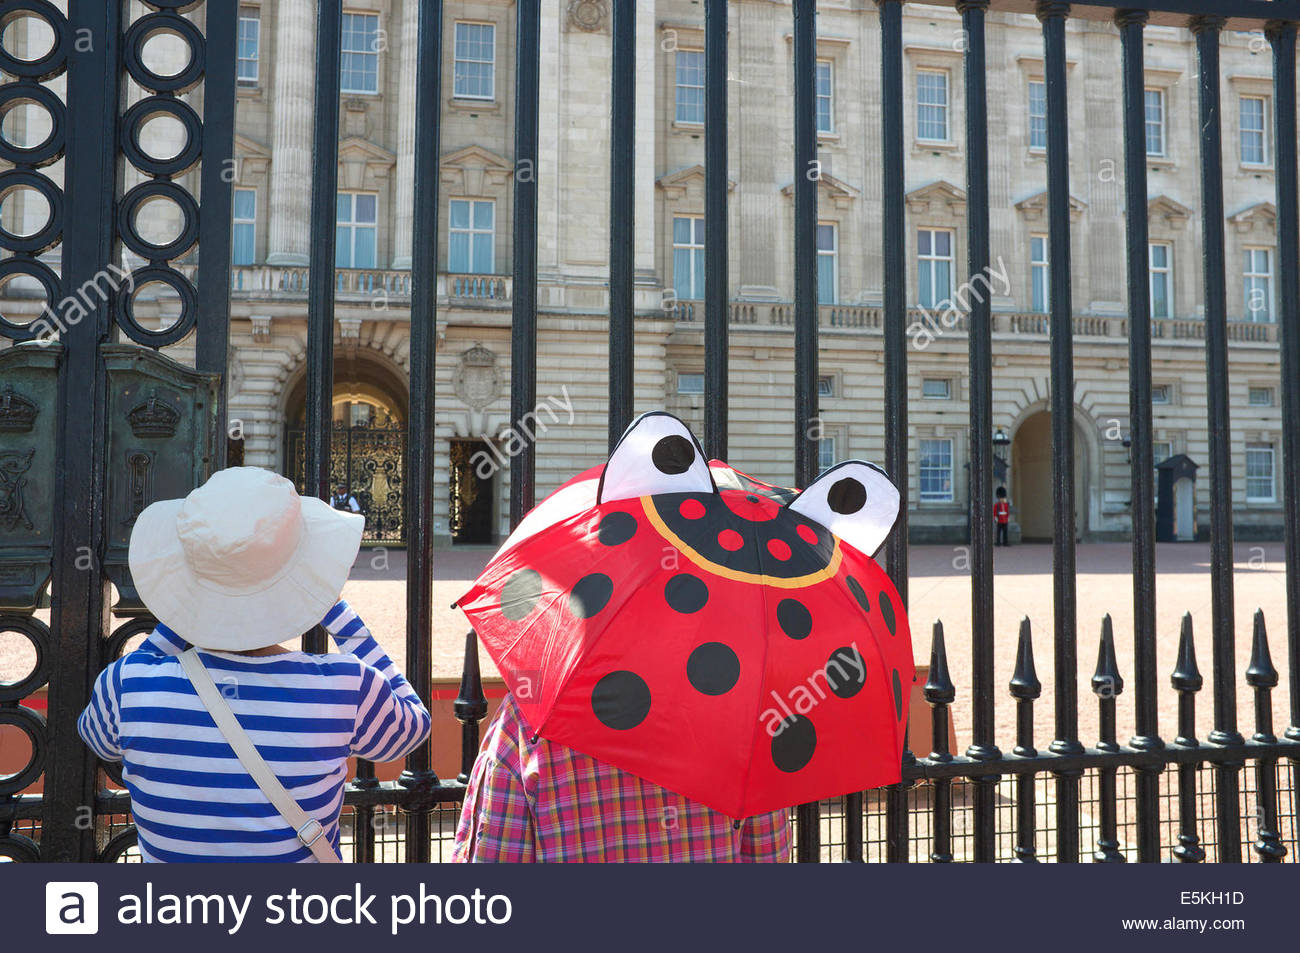 A couple of tourists, dressed in summer clothing, look through the gates of Buckingham Palace, in London, UK. - Stock Image